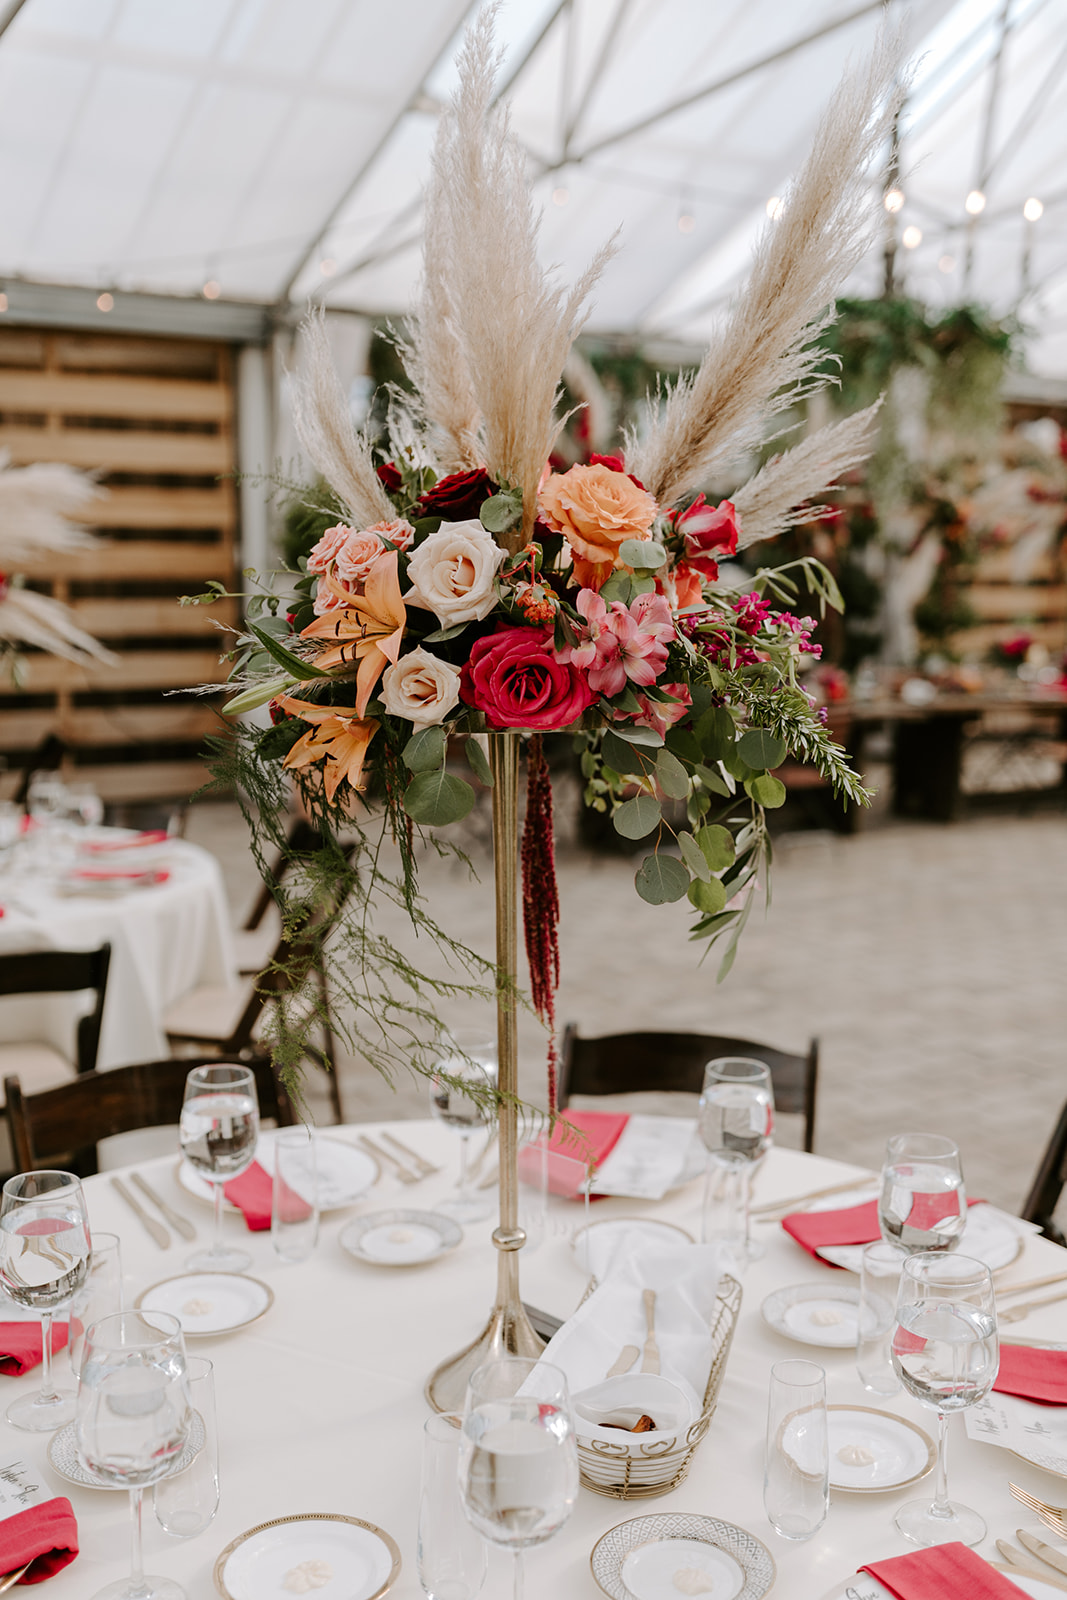 Bright colored wedding flowers